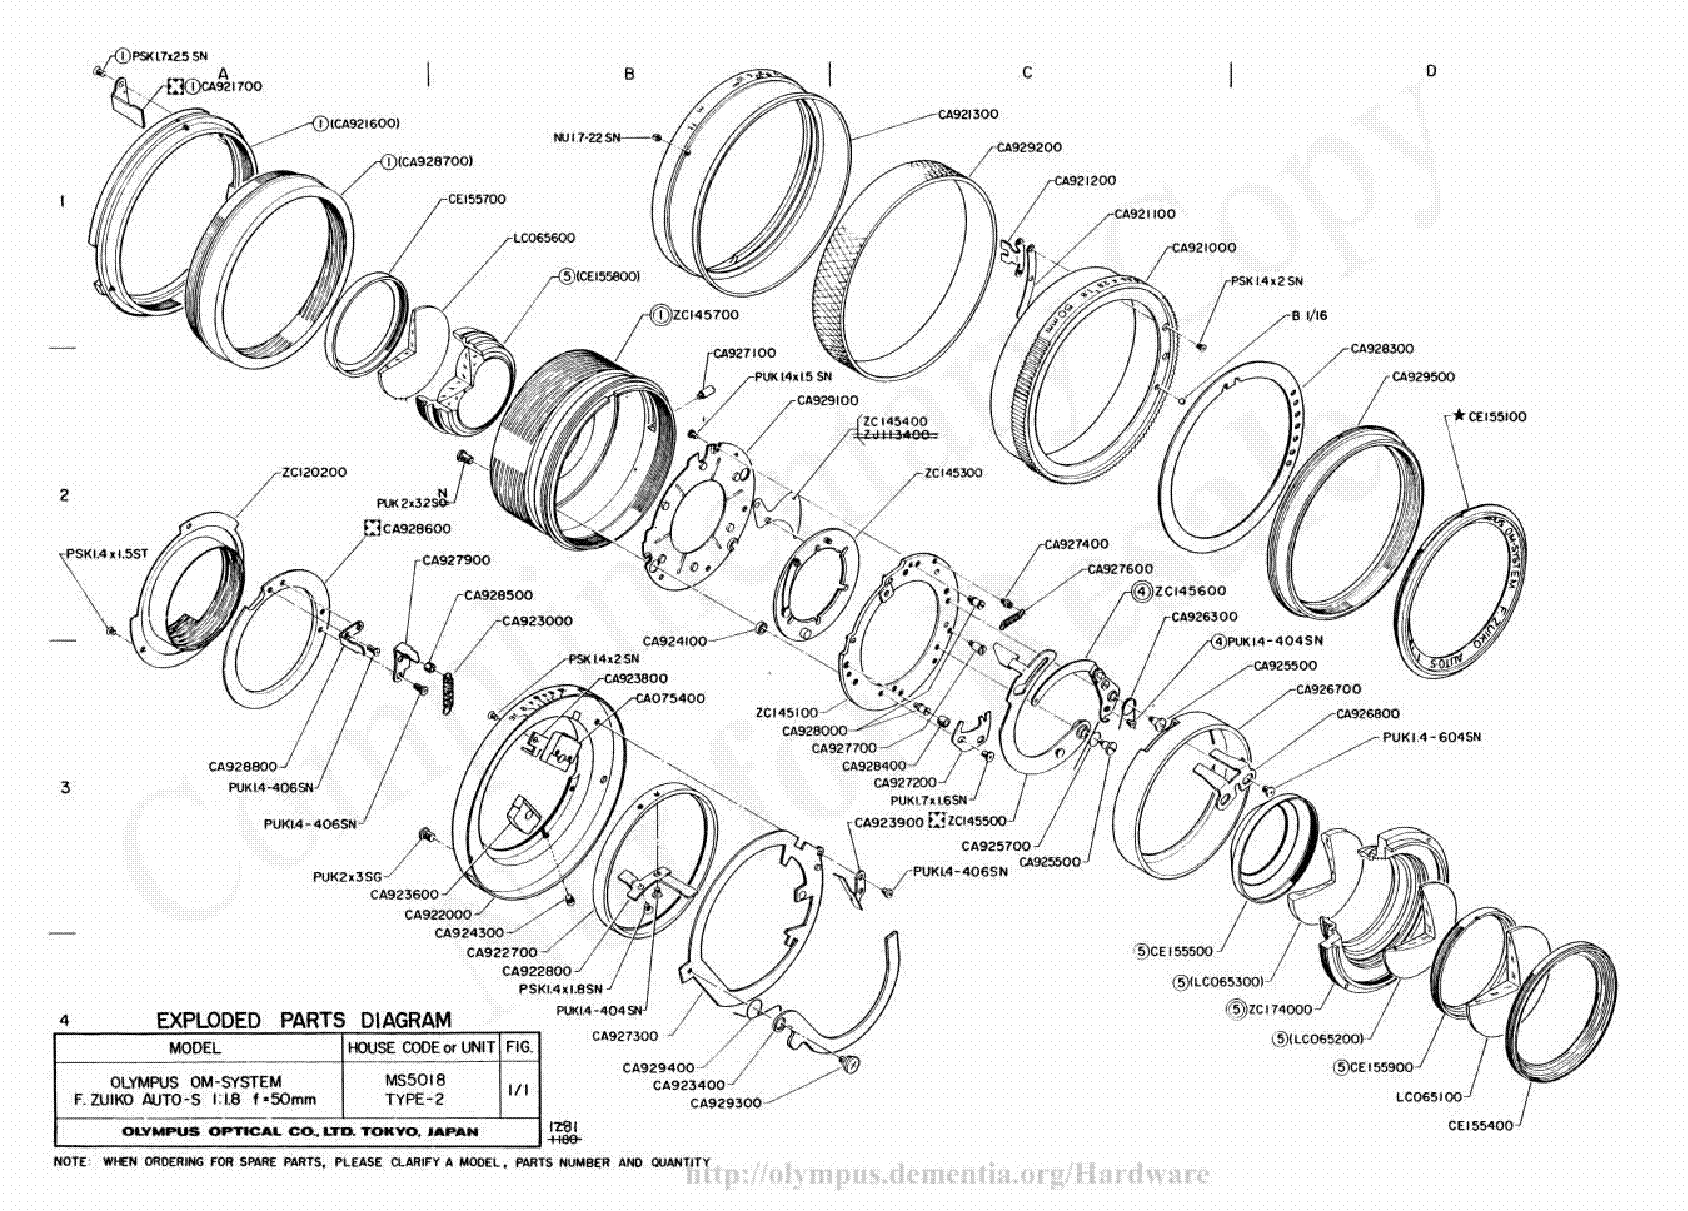 OLYMPUS 50MM F1.8 EXPLODED PARTS DIAGRAM service manual (2nd page)